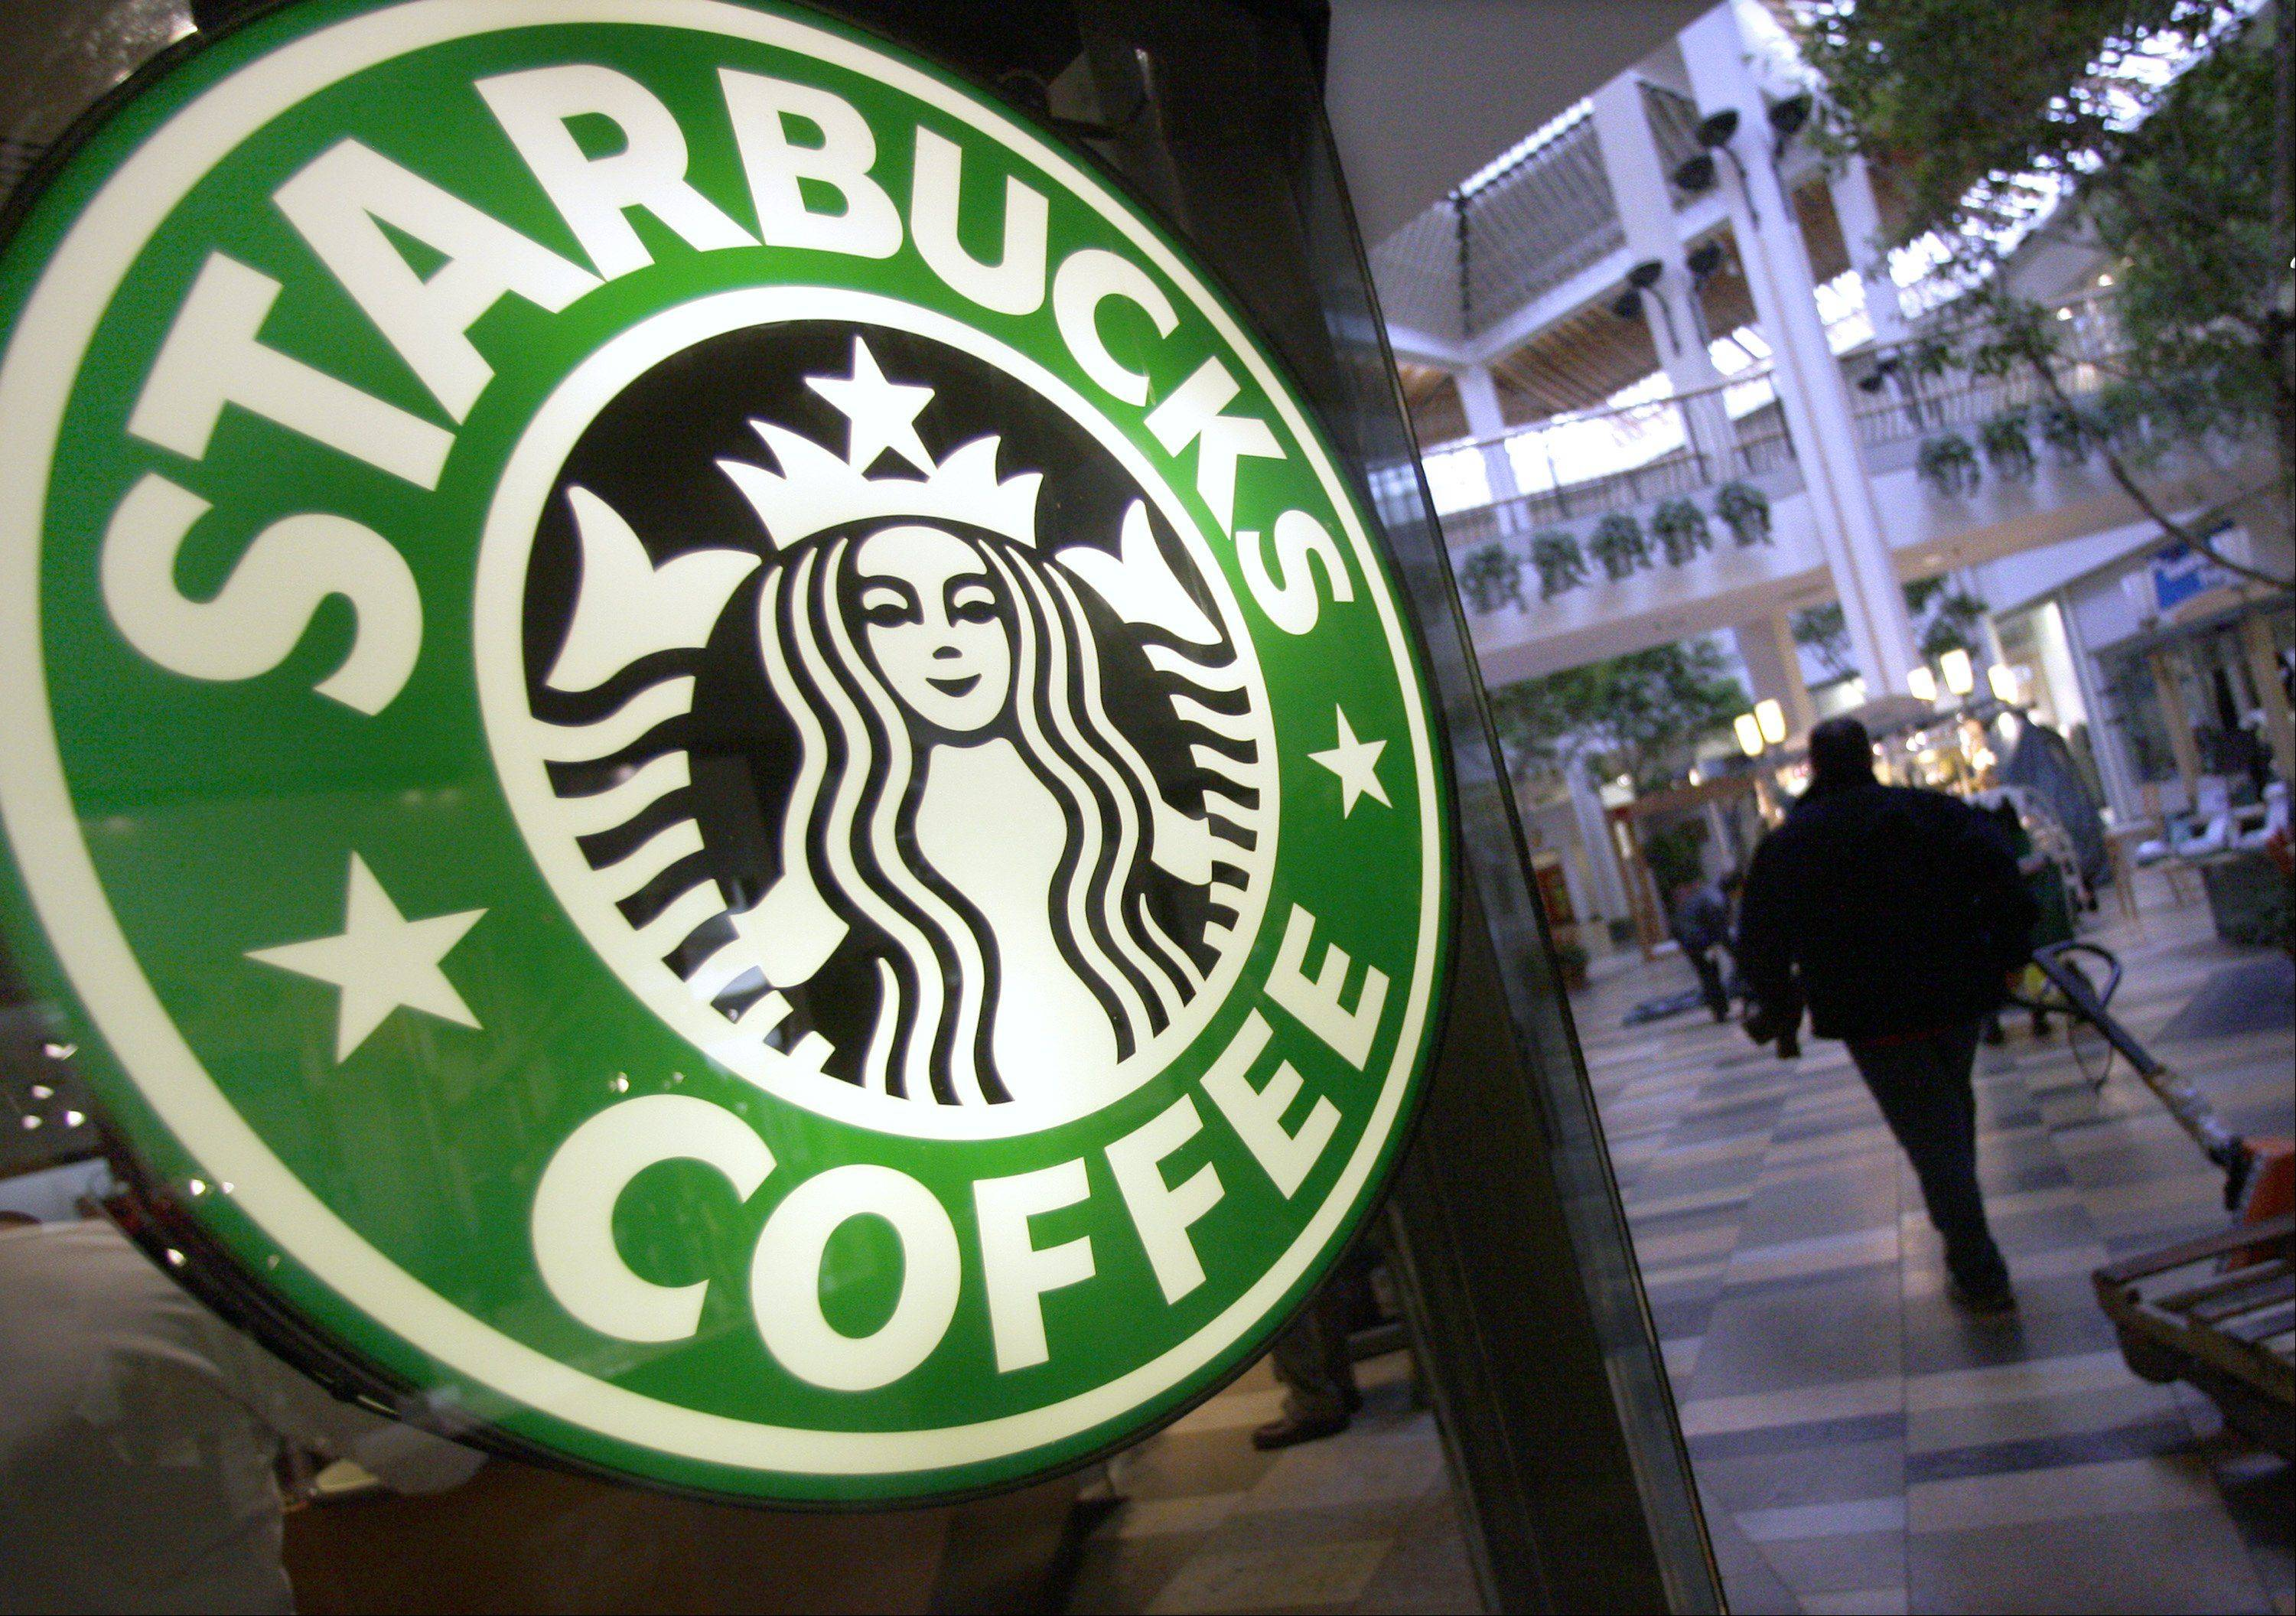 "This Starbucks name and logo are famous around the globe. ""We built the brand,"" says Zack Hutson, a Starbucks spokesman. He says an Algonquin dog-boarding business using the Starbarks name and logo violates the coffee company's trademark."